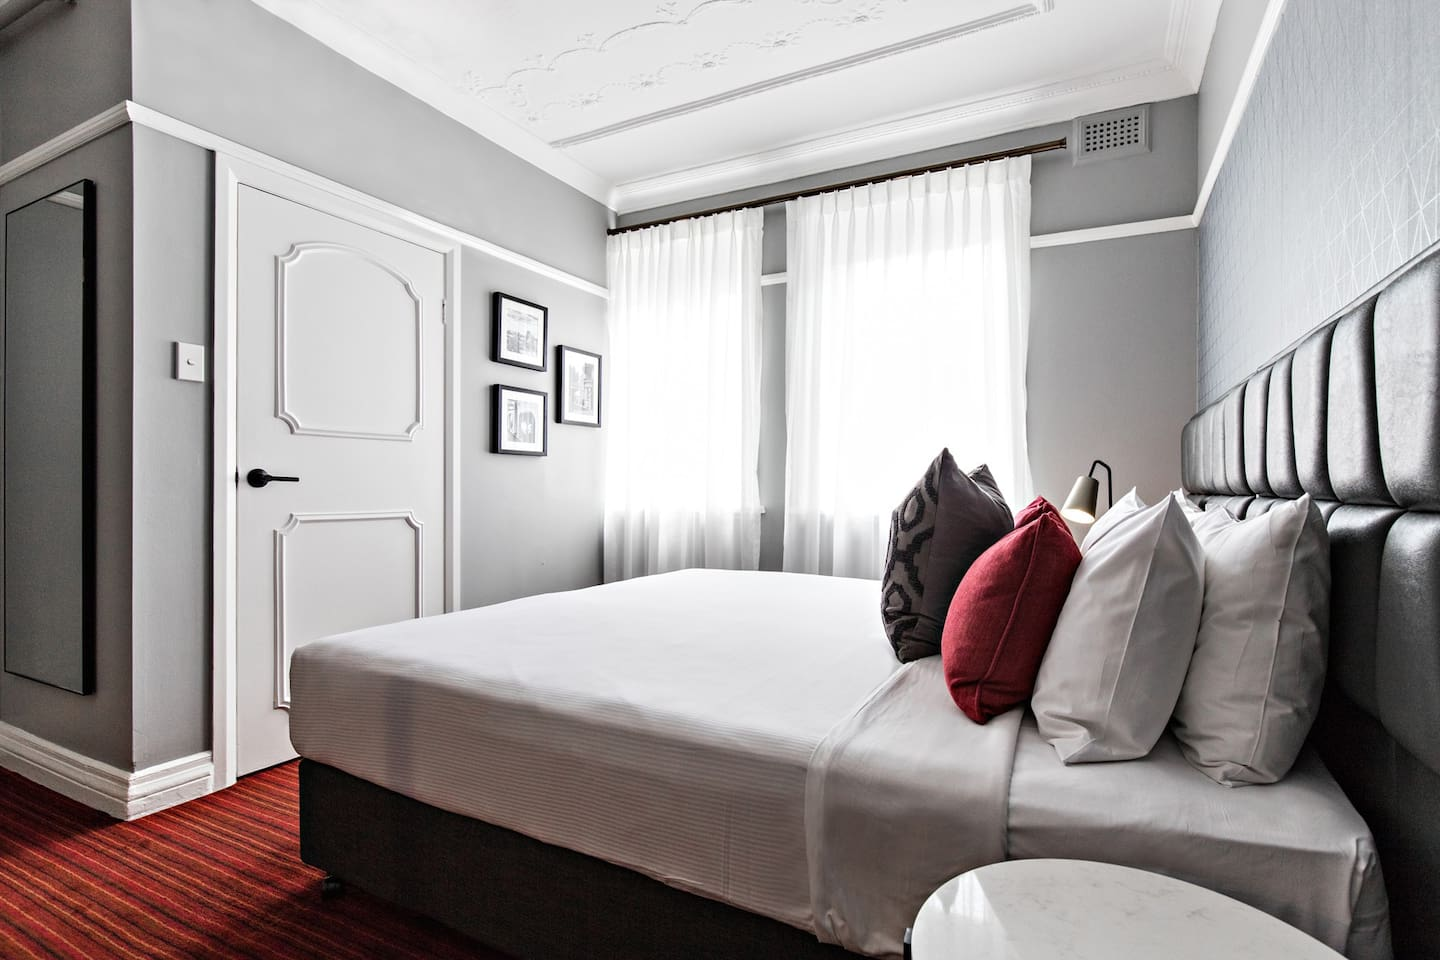 The King Room is a comfortable option for two guests